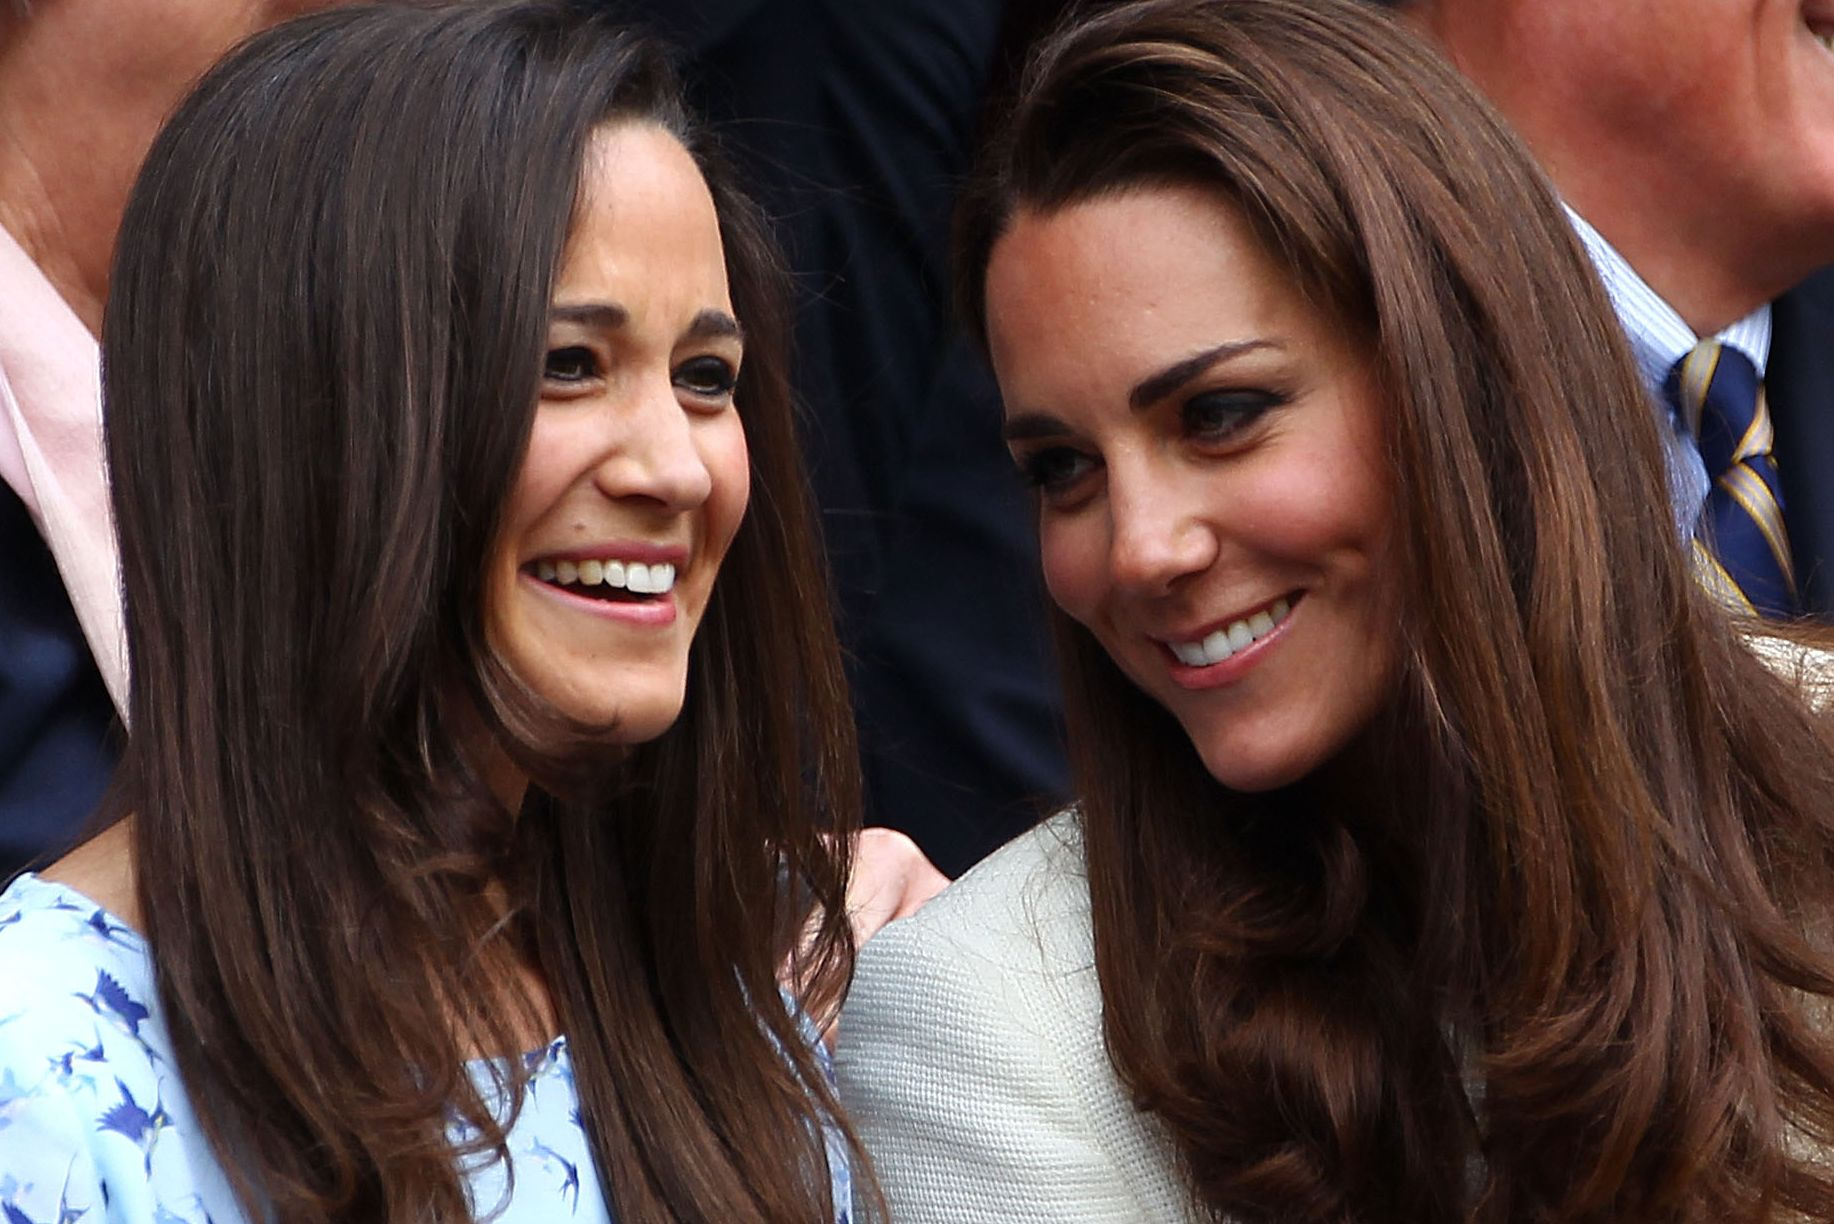 Kate and Pippa Middleton Had Secret Jobs That You've Never Heard About